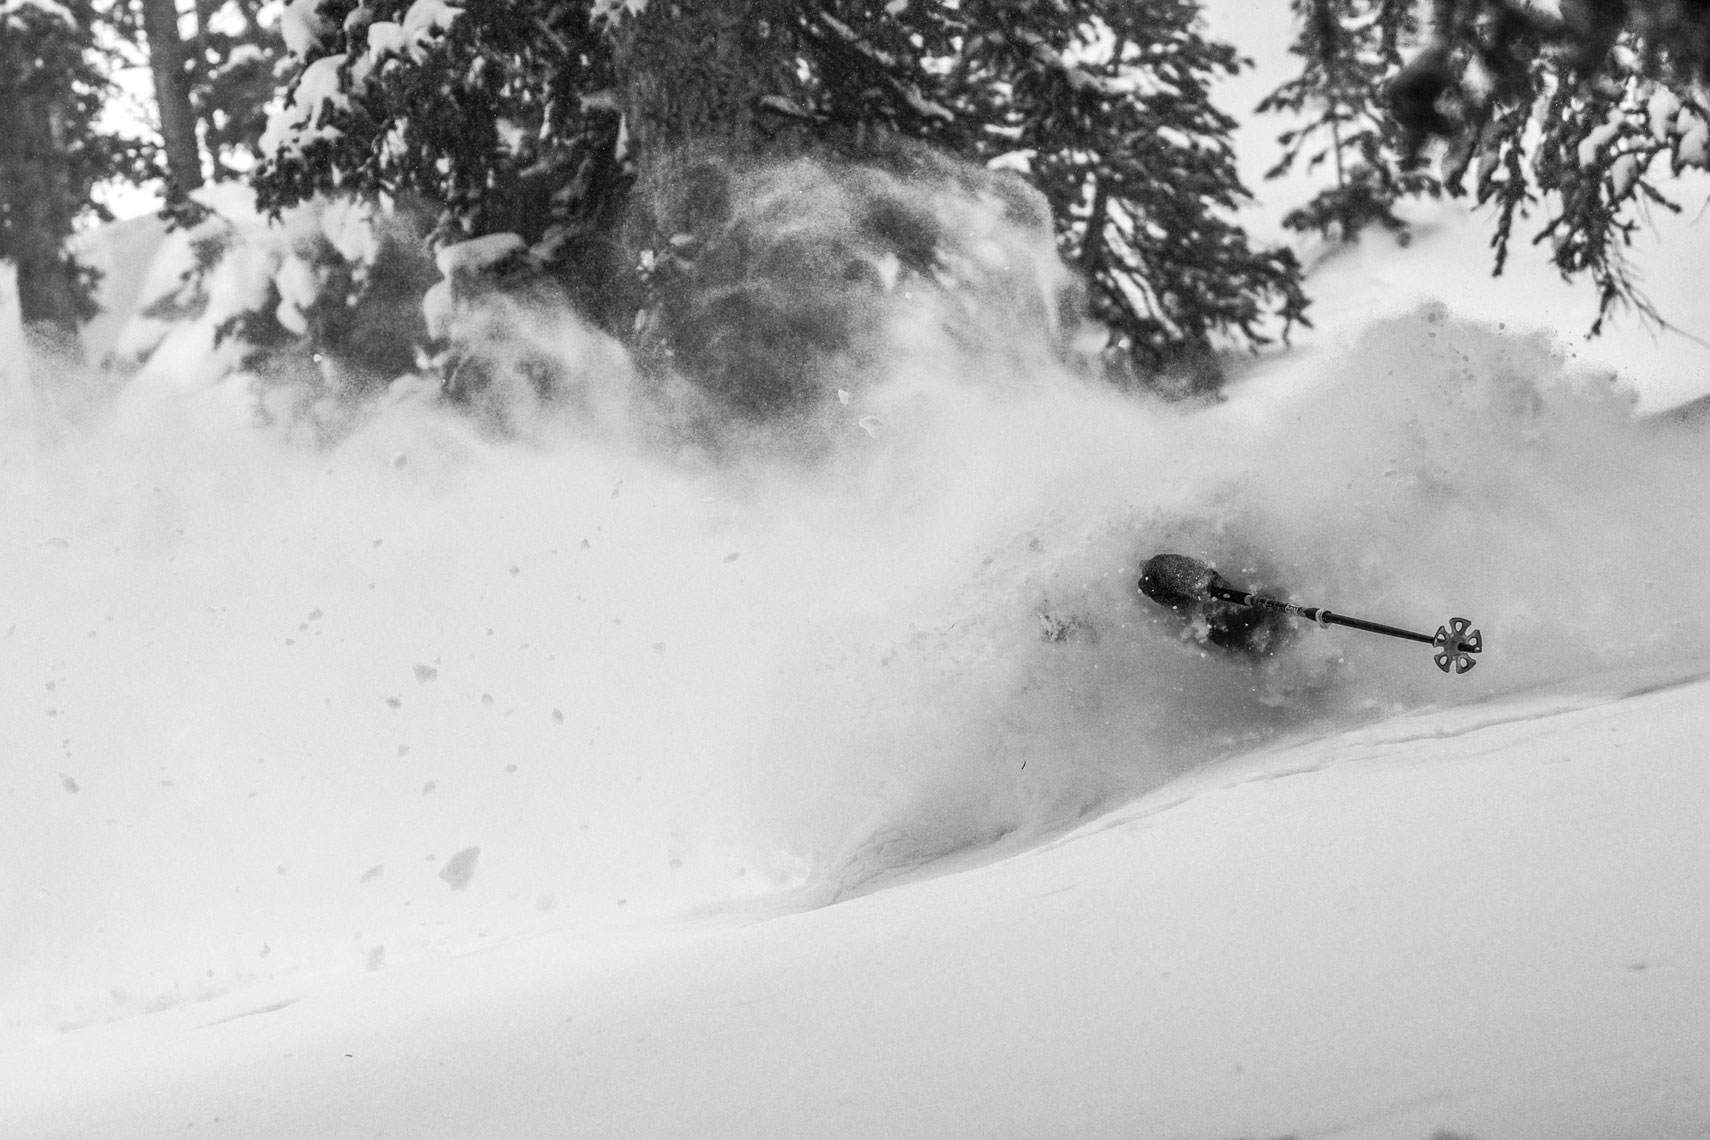 Marcus Caston Skiing Powder at Snowbird Photo: Jay Dash